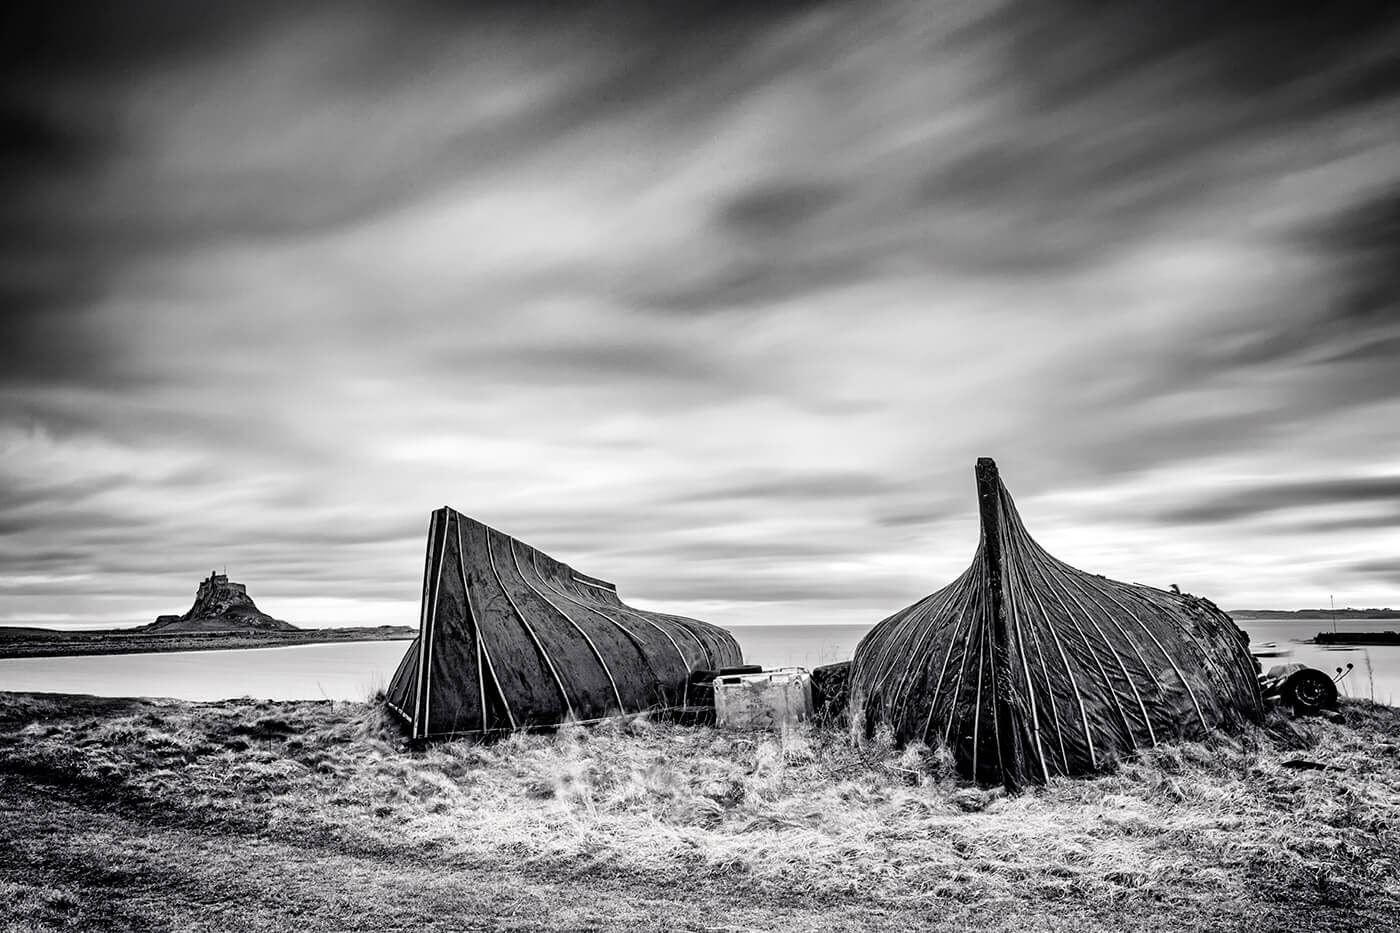 Lindisfarne Castle & Boat Huts, Holy Island, Northumberland